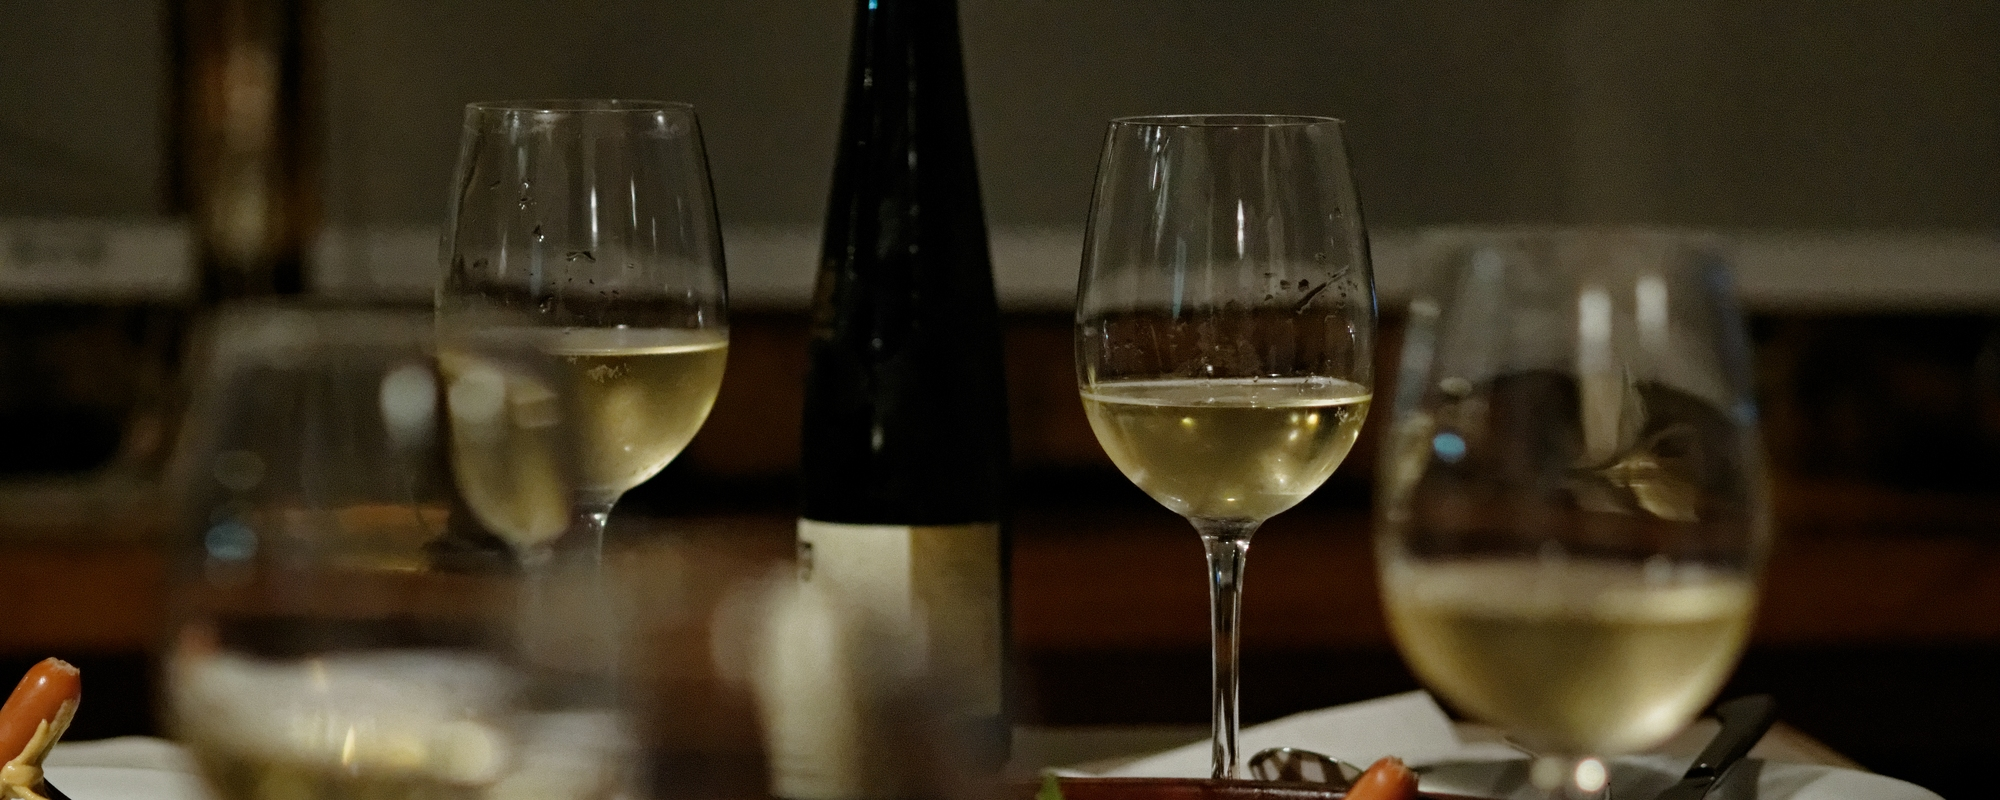 Riesling with glasses